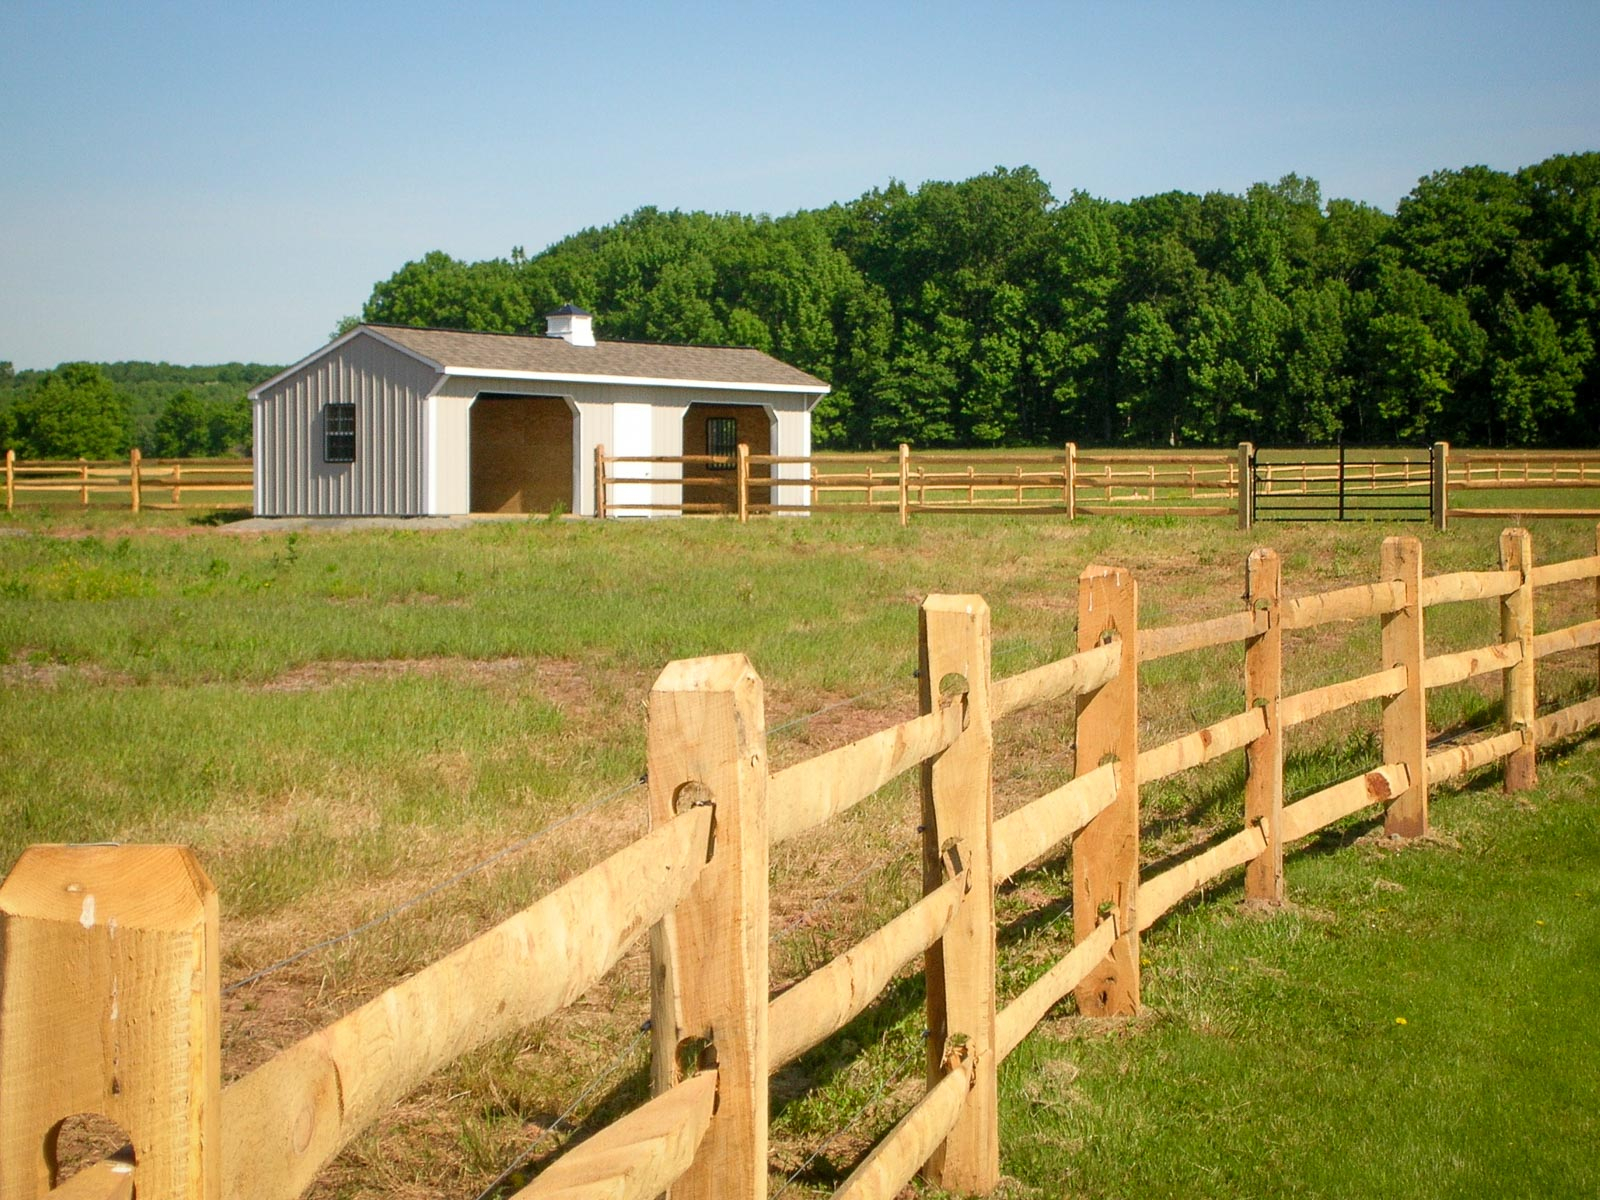 Wood Horse Fencing Cole Papers Design Building A Wooden Horse within size 1600 X 1200